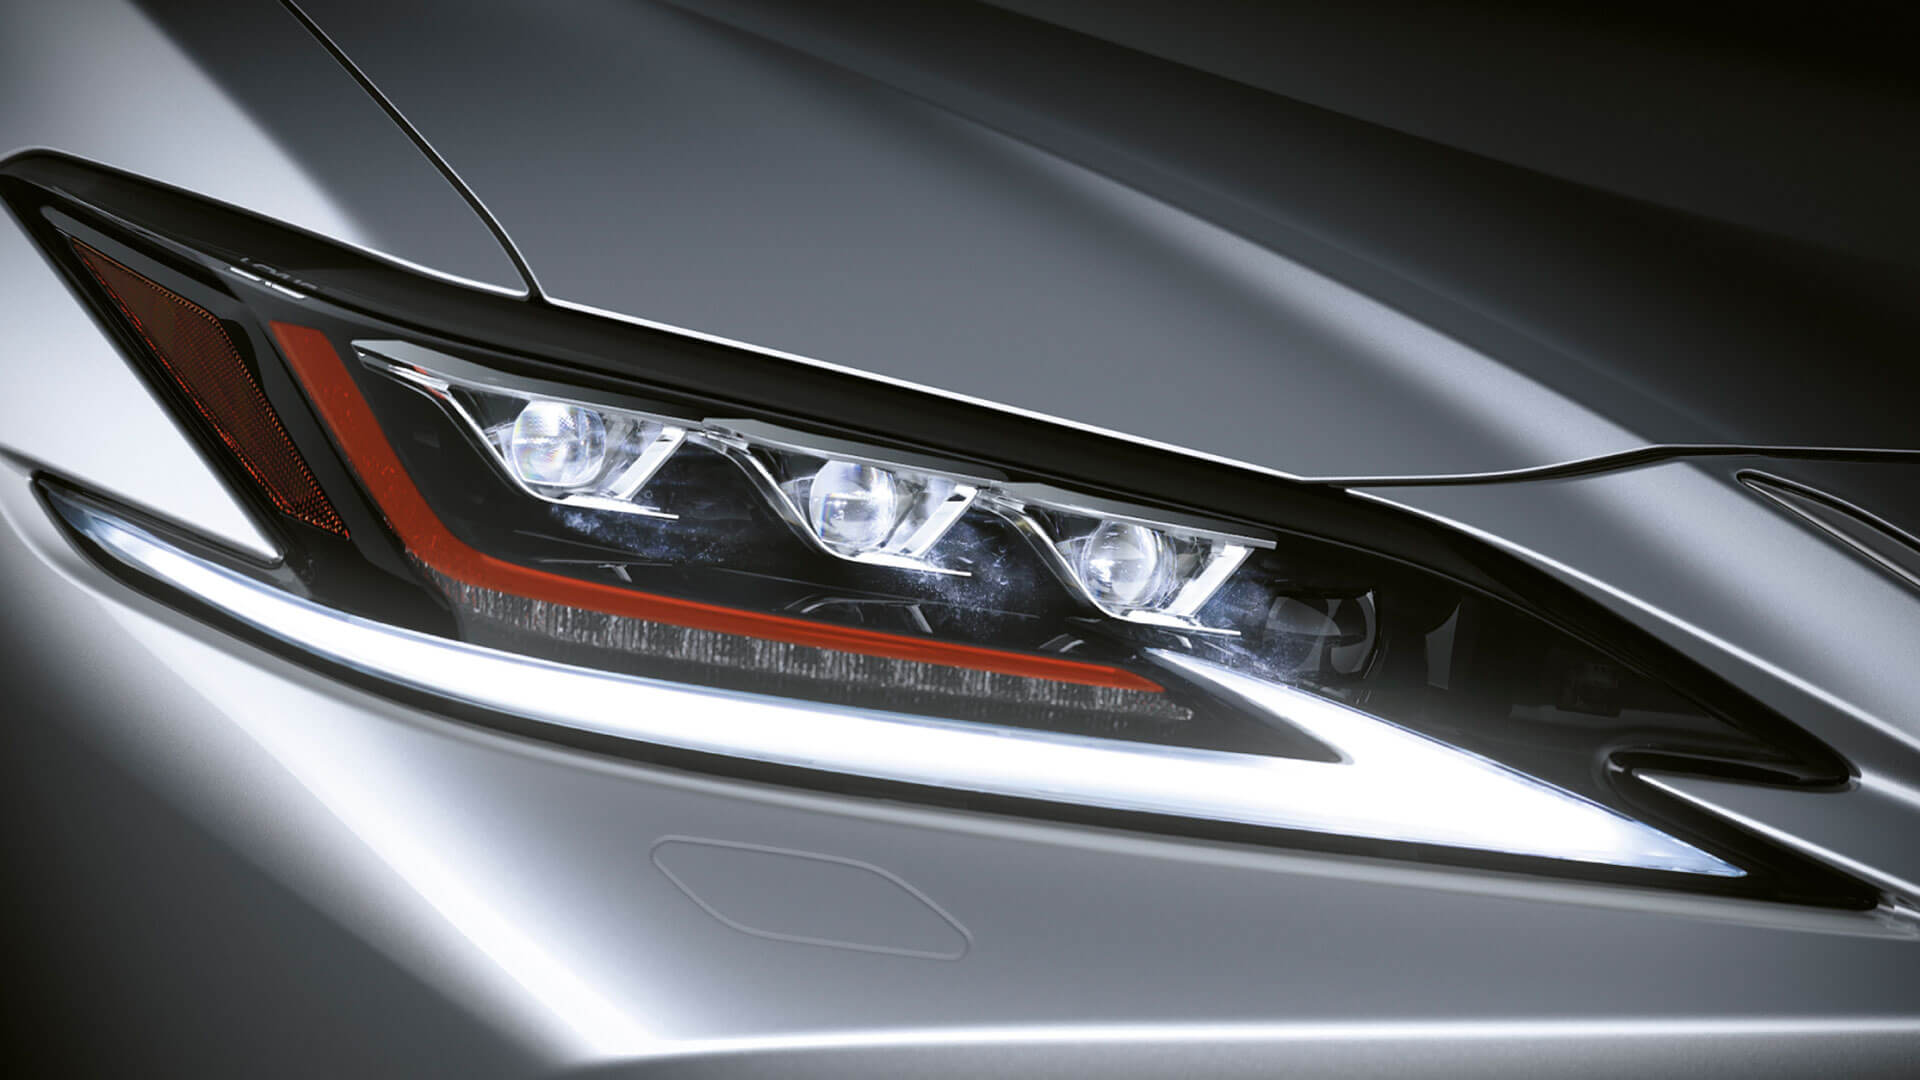 2019 lexus es experience feature headlight